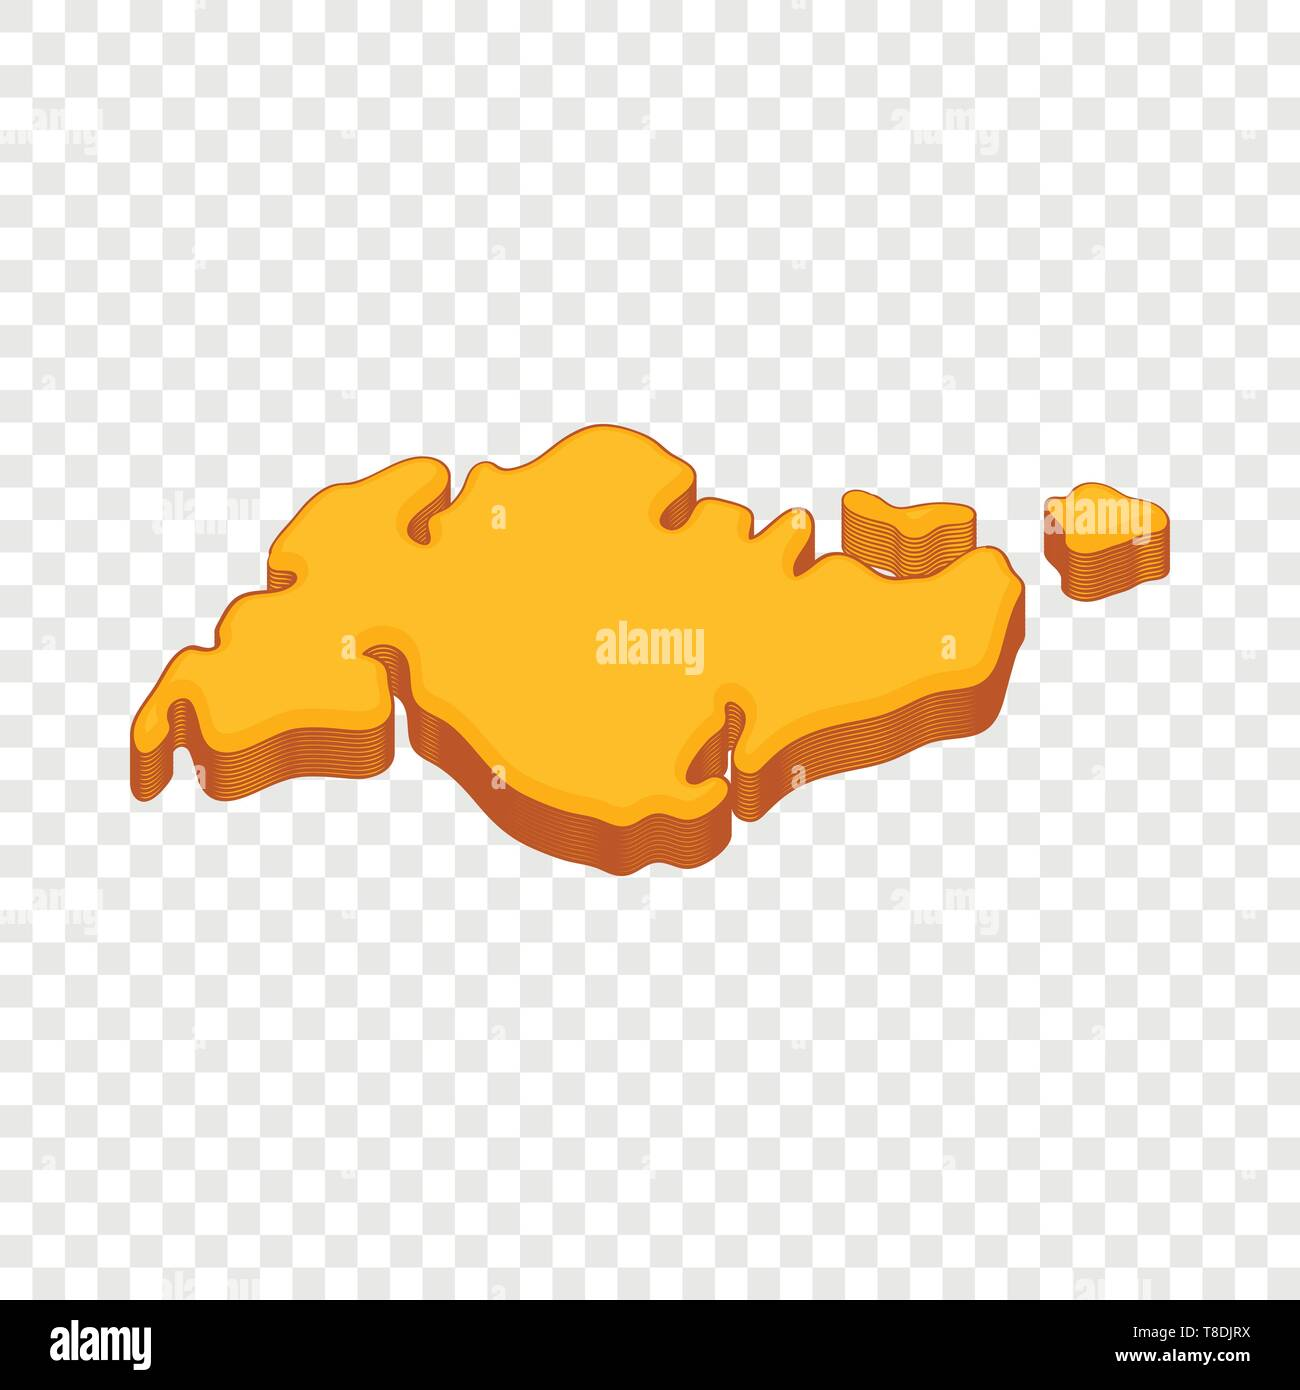 Continent icon, cartoon style - Stock Image